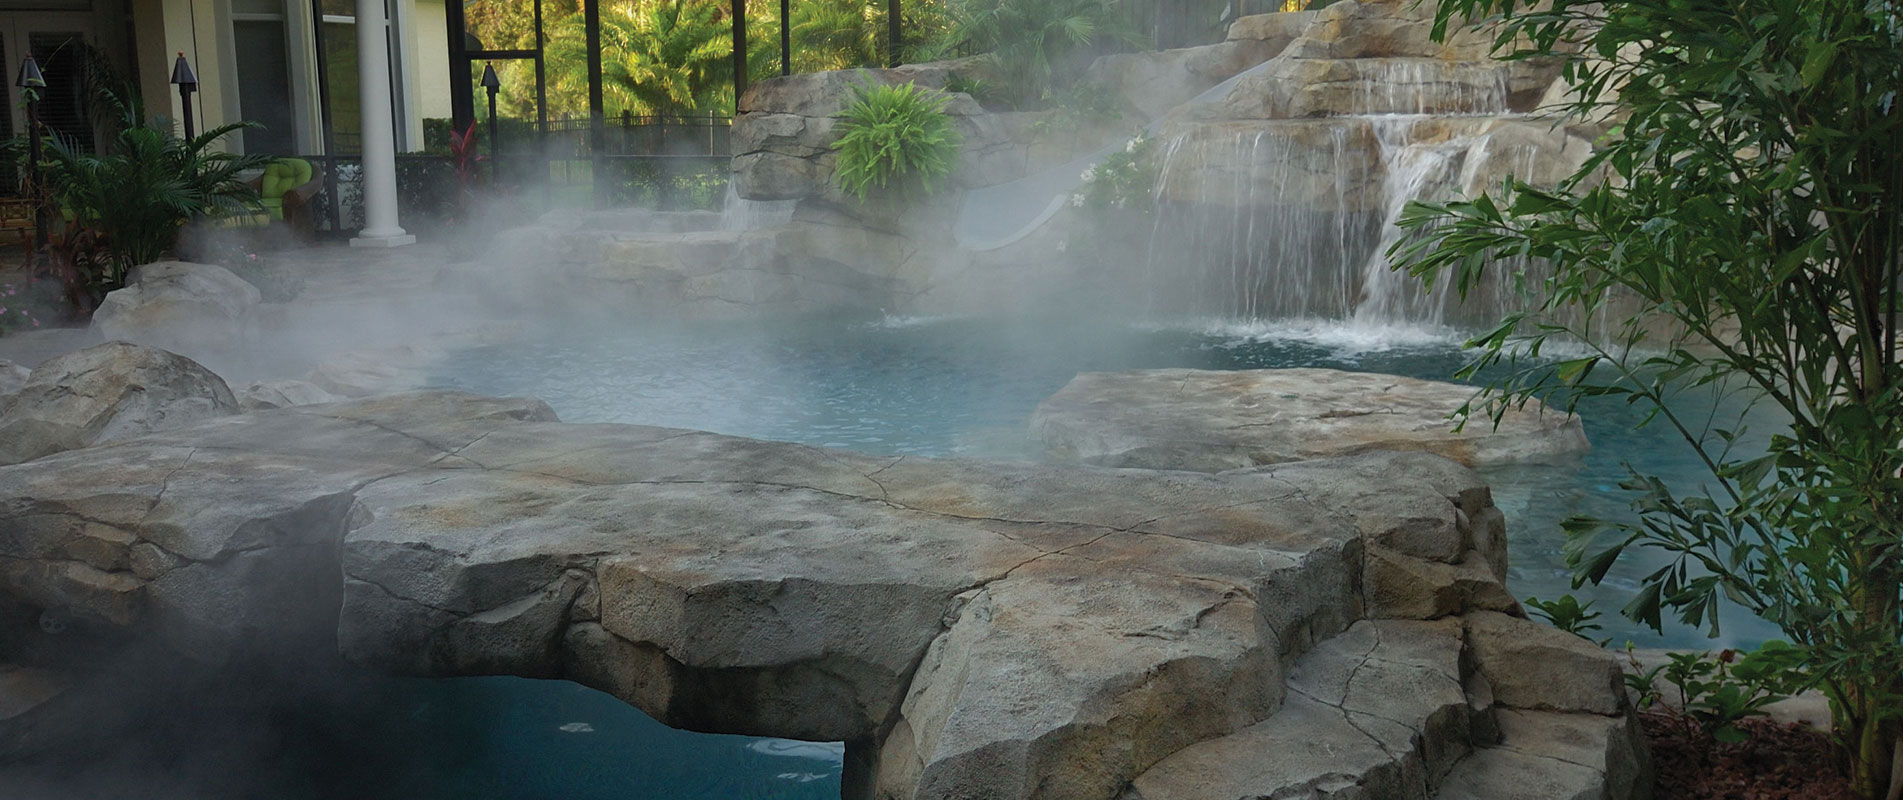 custom-pool-with-misting-system-and-rock-bridge